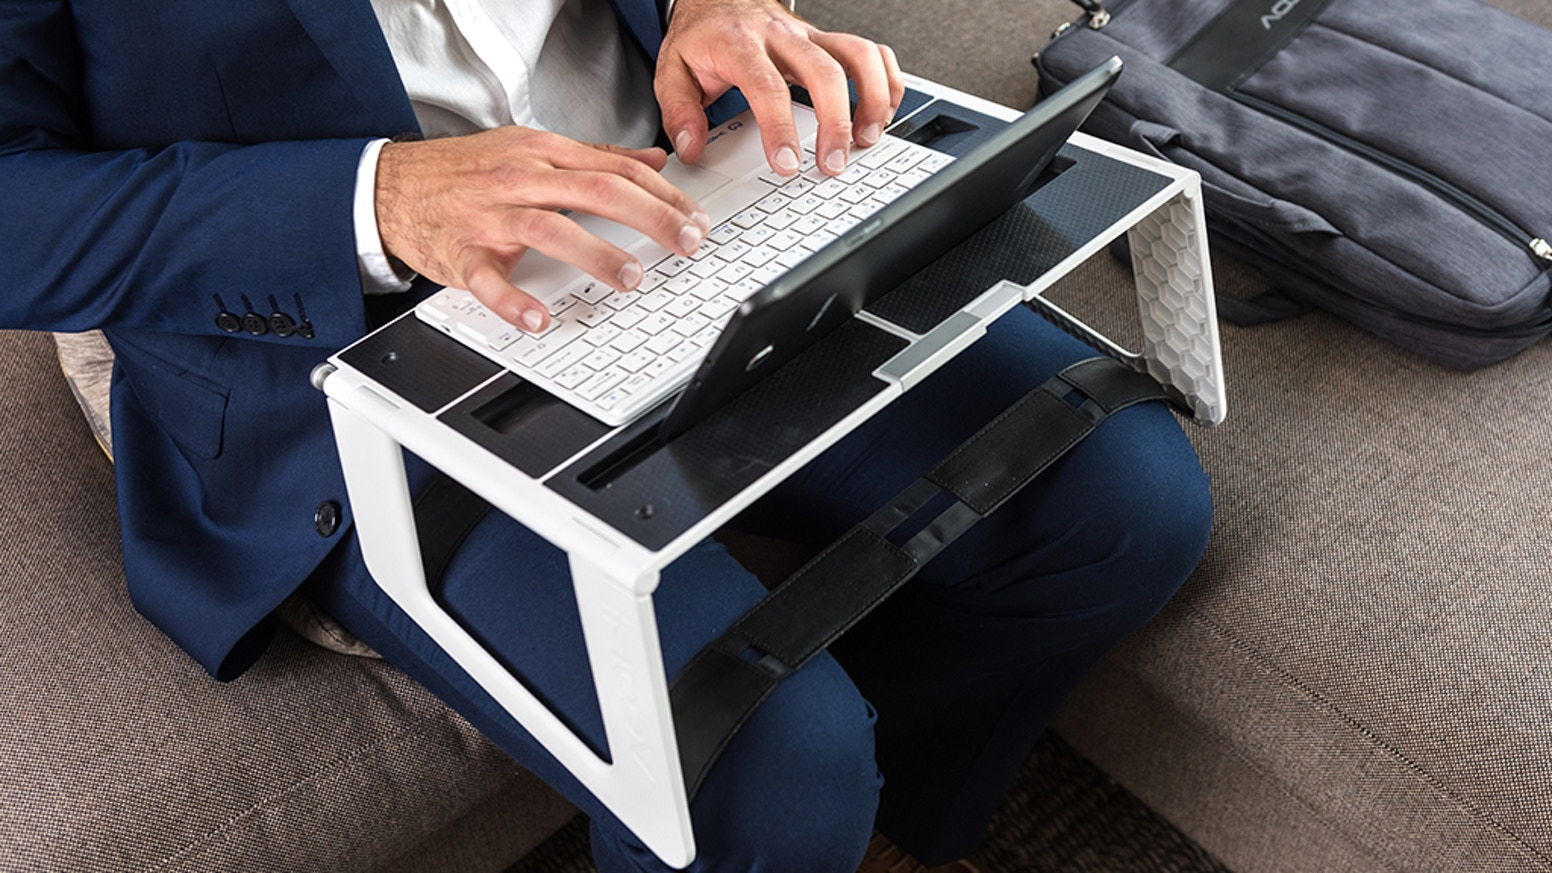 The world's most versatile and ergonomic phone, tablet & laptop stand – use any device, anywhere.